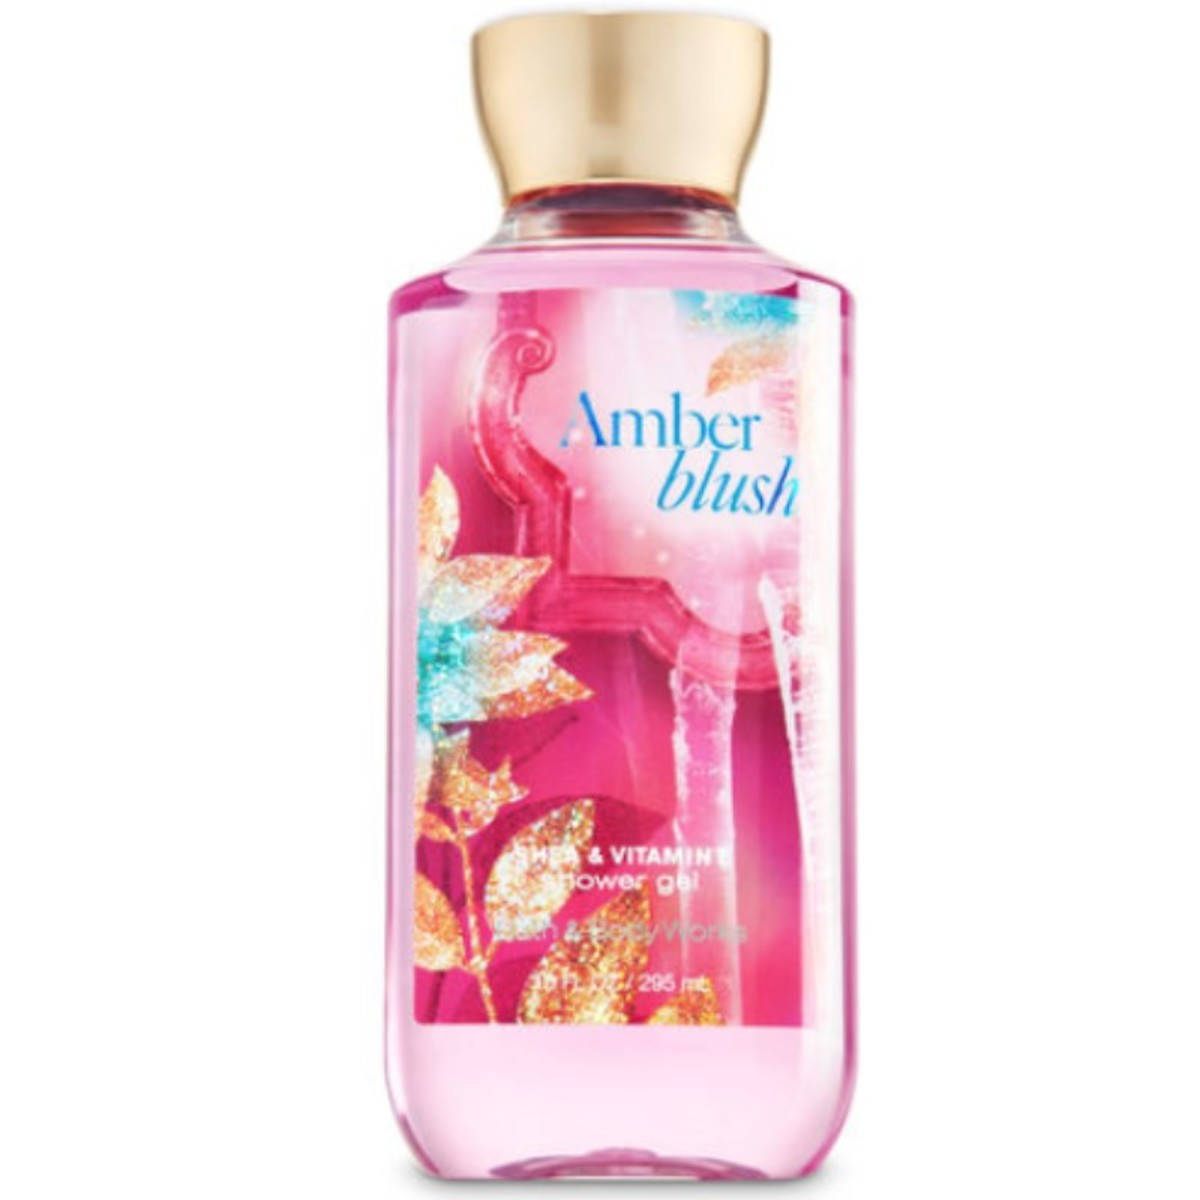 Amber Blush Shower Gel(Parallel Imports Product)